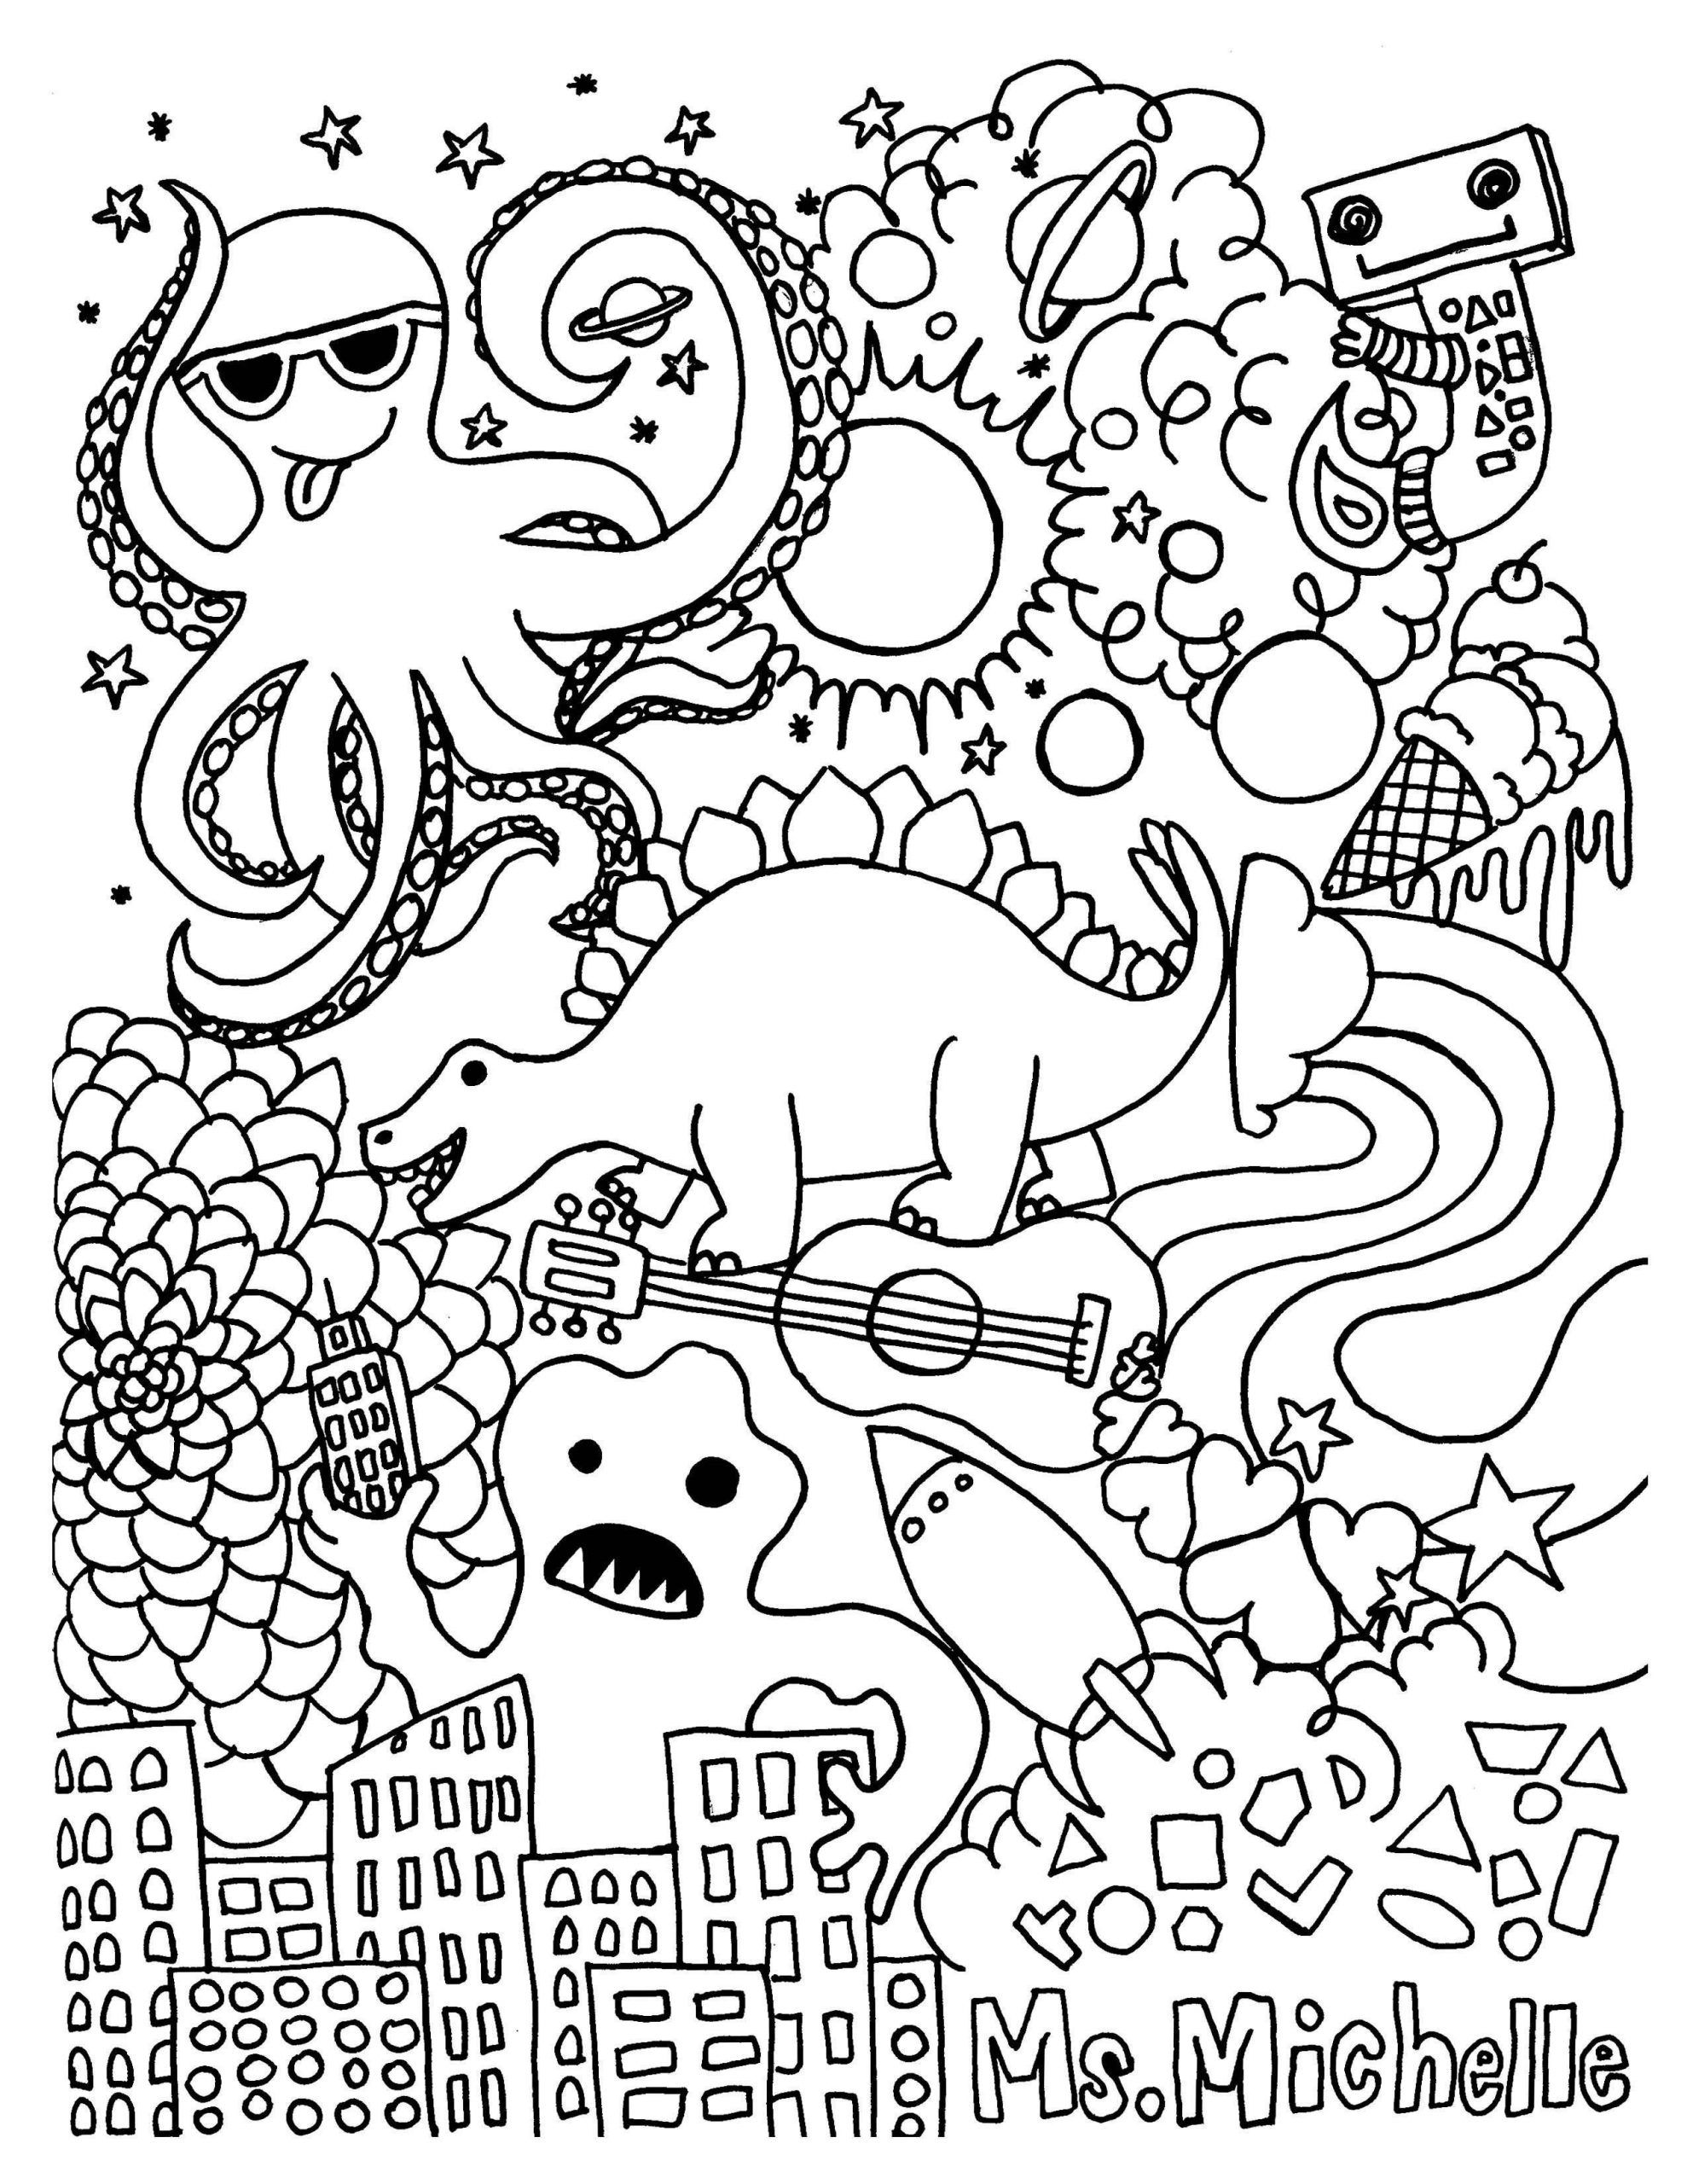 Halloween Worksheets For 2nd Grade In 2020 Coloring Pages Inspirational Alphabet Coloring Pages Fall Coloring Pages